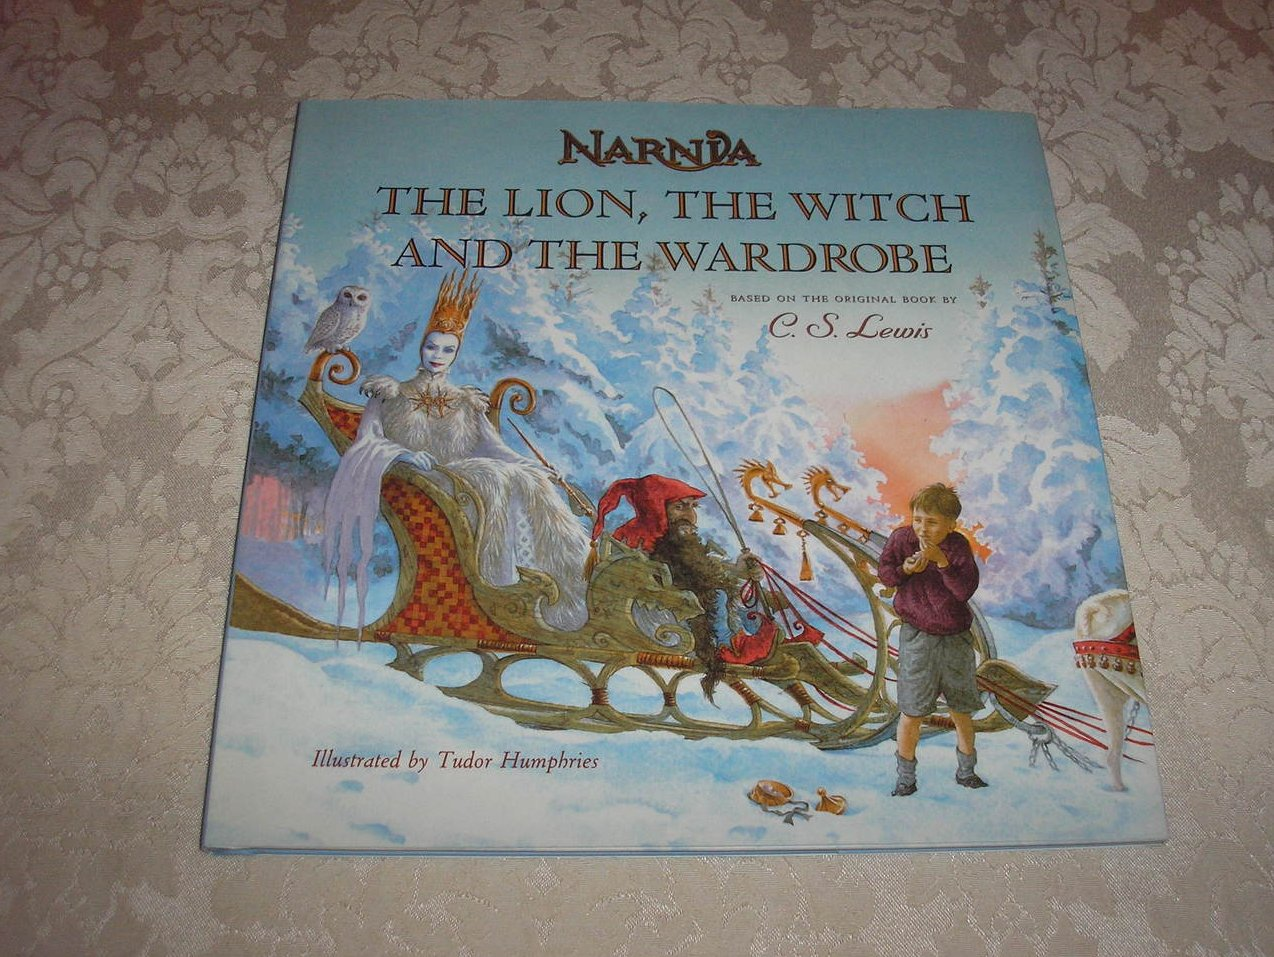 an analysis of the lion the witch and the wardrobe a novel by c s lewis The first book in c s lewis's the chronicles of narnia series, the lion, the witch and the wardrobe endures more than half a century after its publicationthe novel has been adapted for television multiple times, as well as for the stage and film.